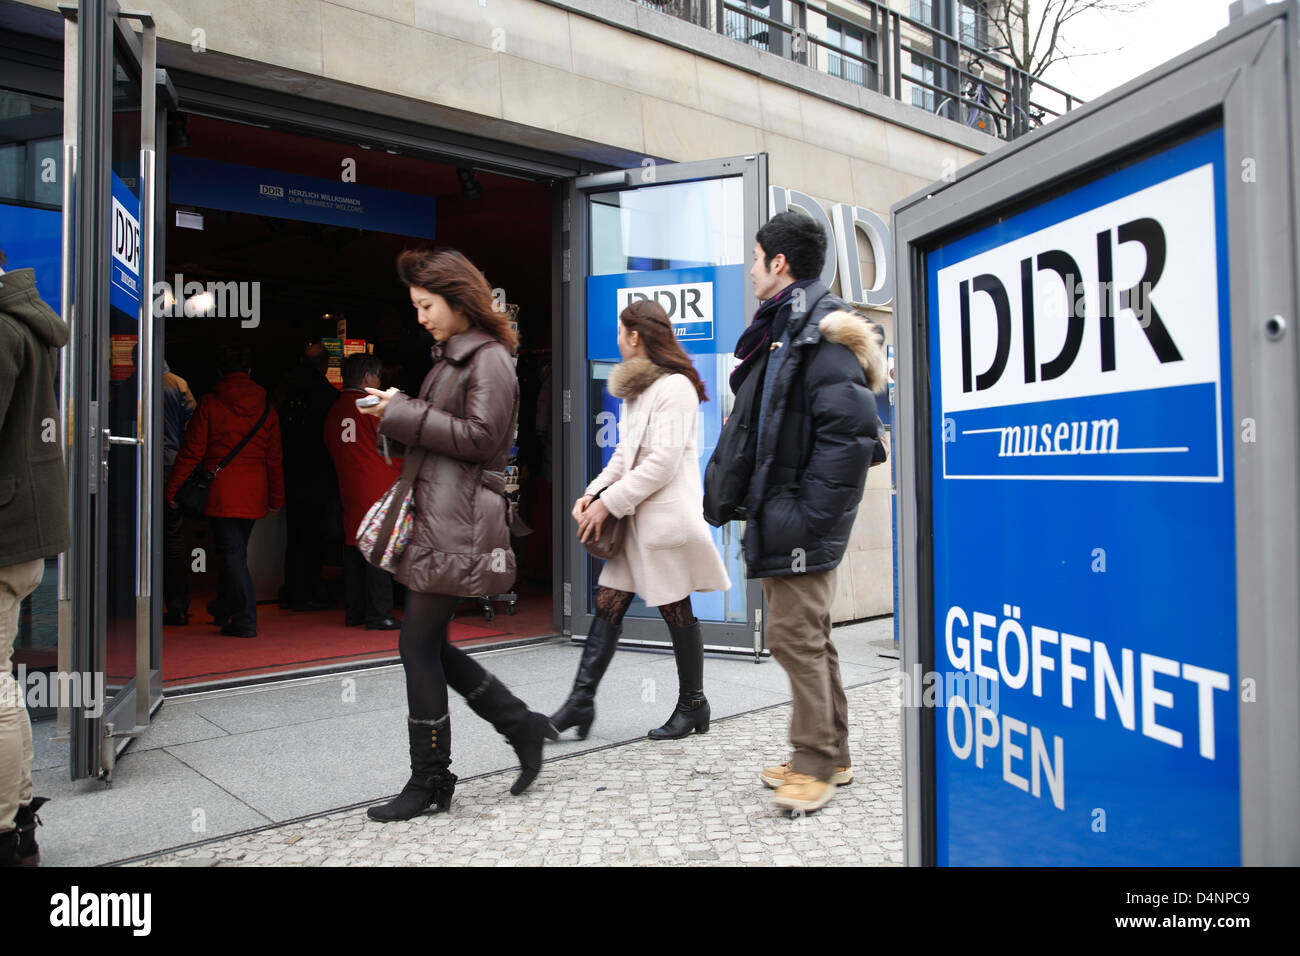 Entrance of DDR-Museum at the Spree, Berlin, Germany - Stock Image